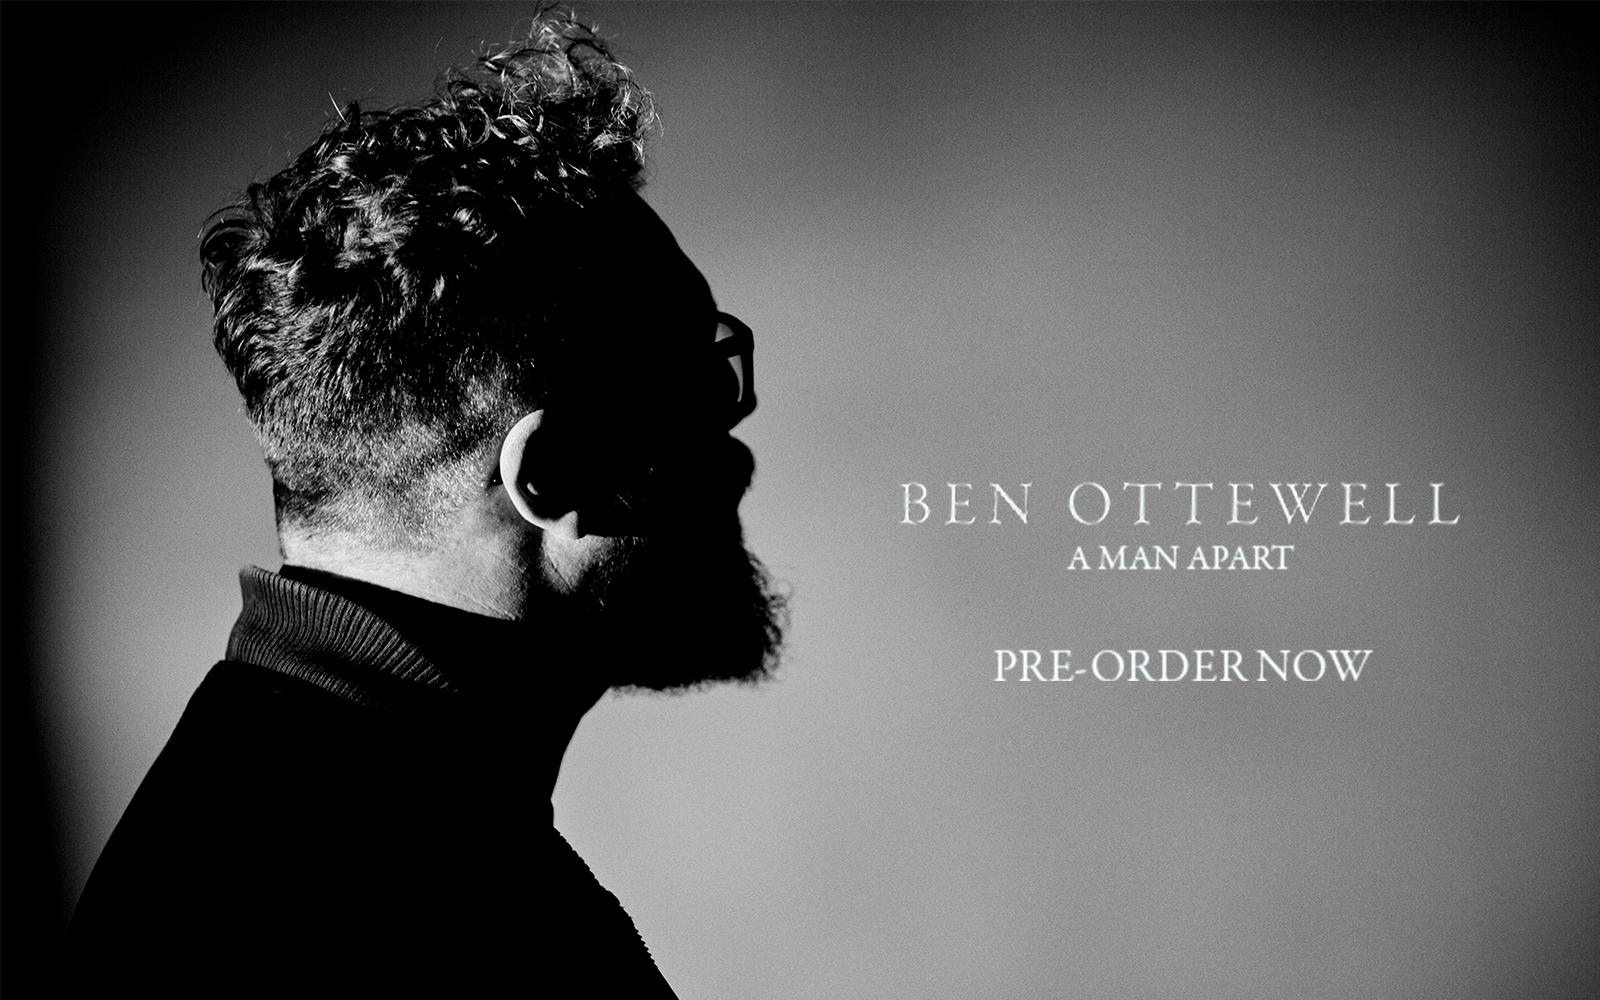 ALBUMPREORDER-WEBSITEBANNER